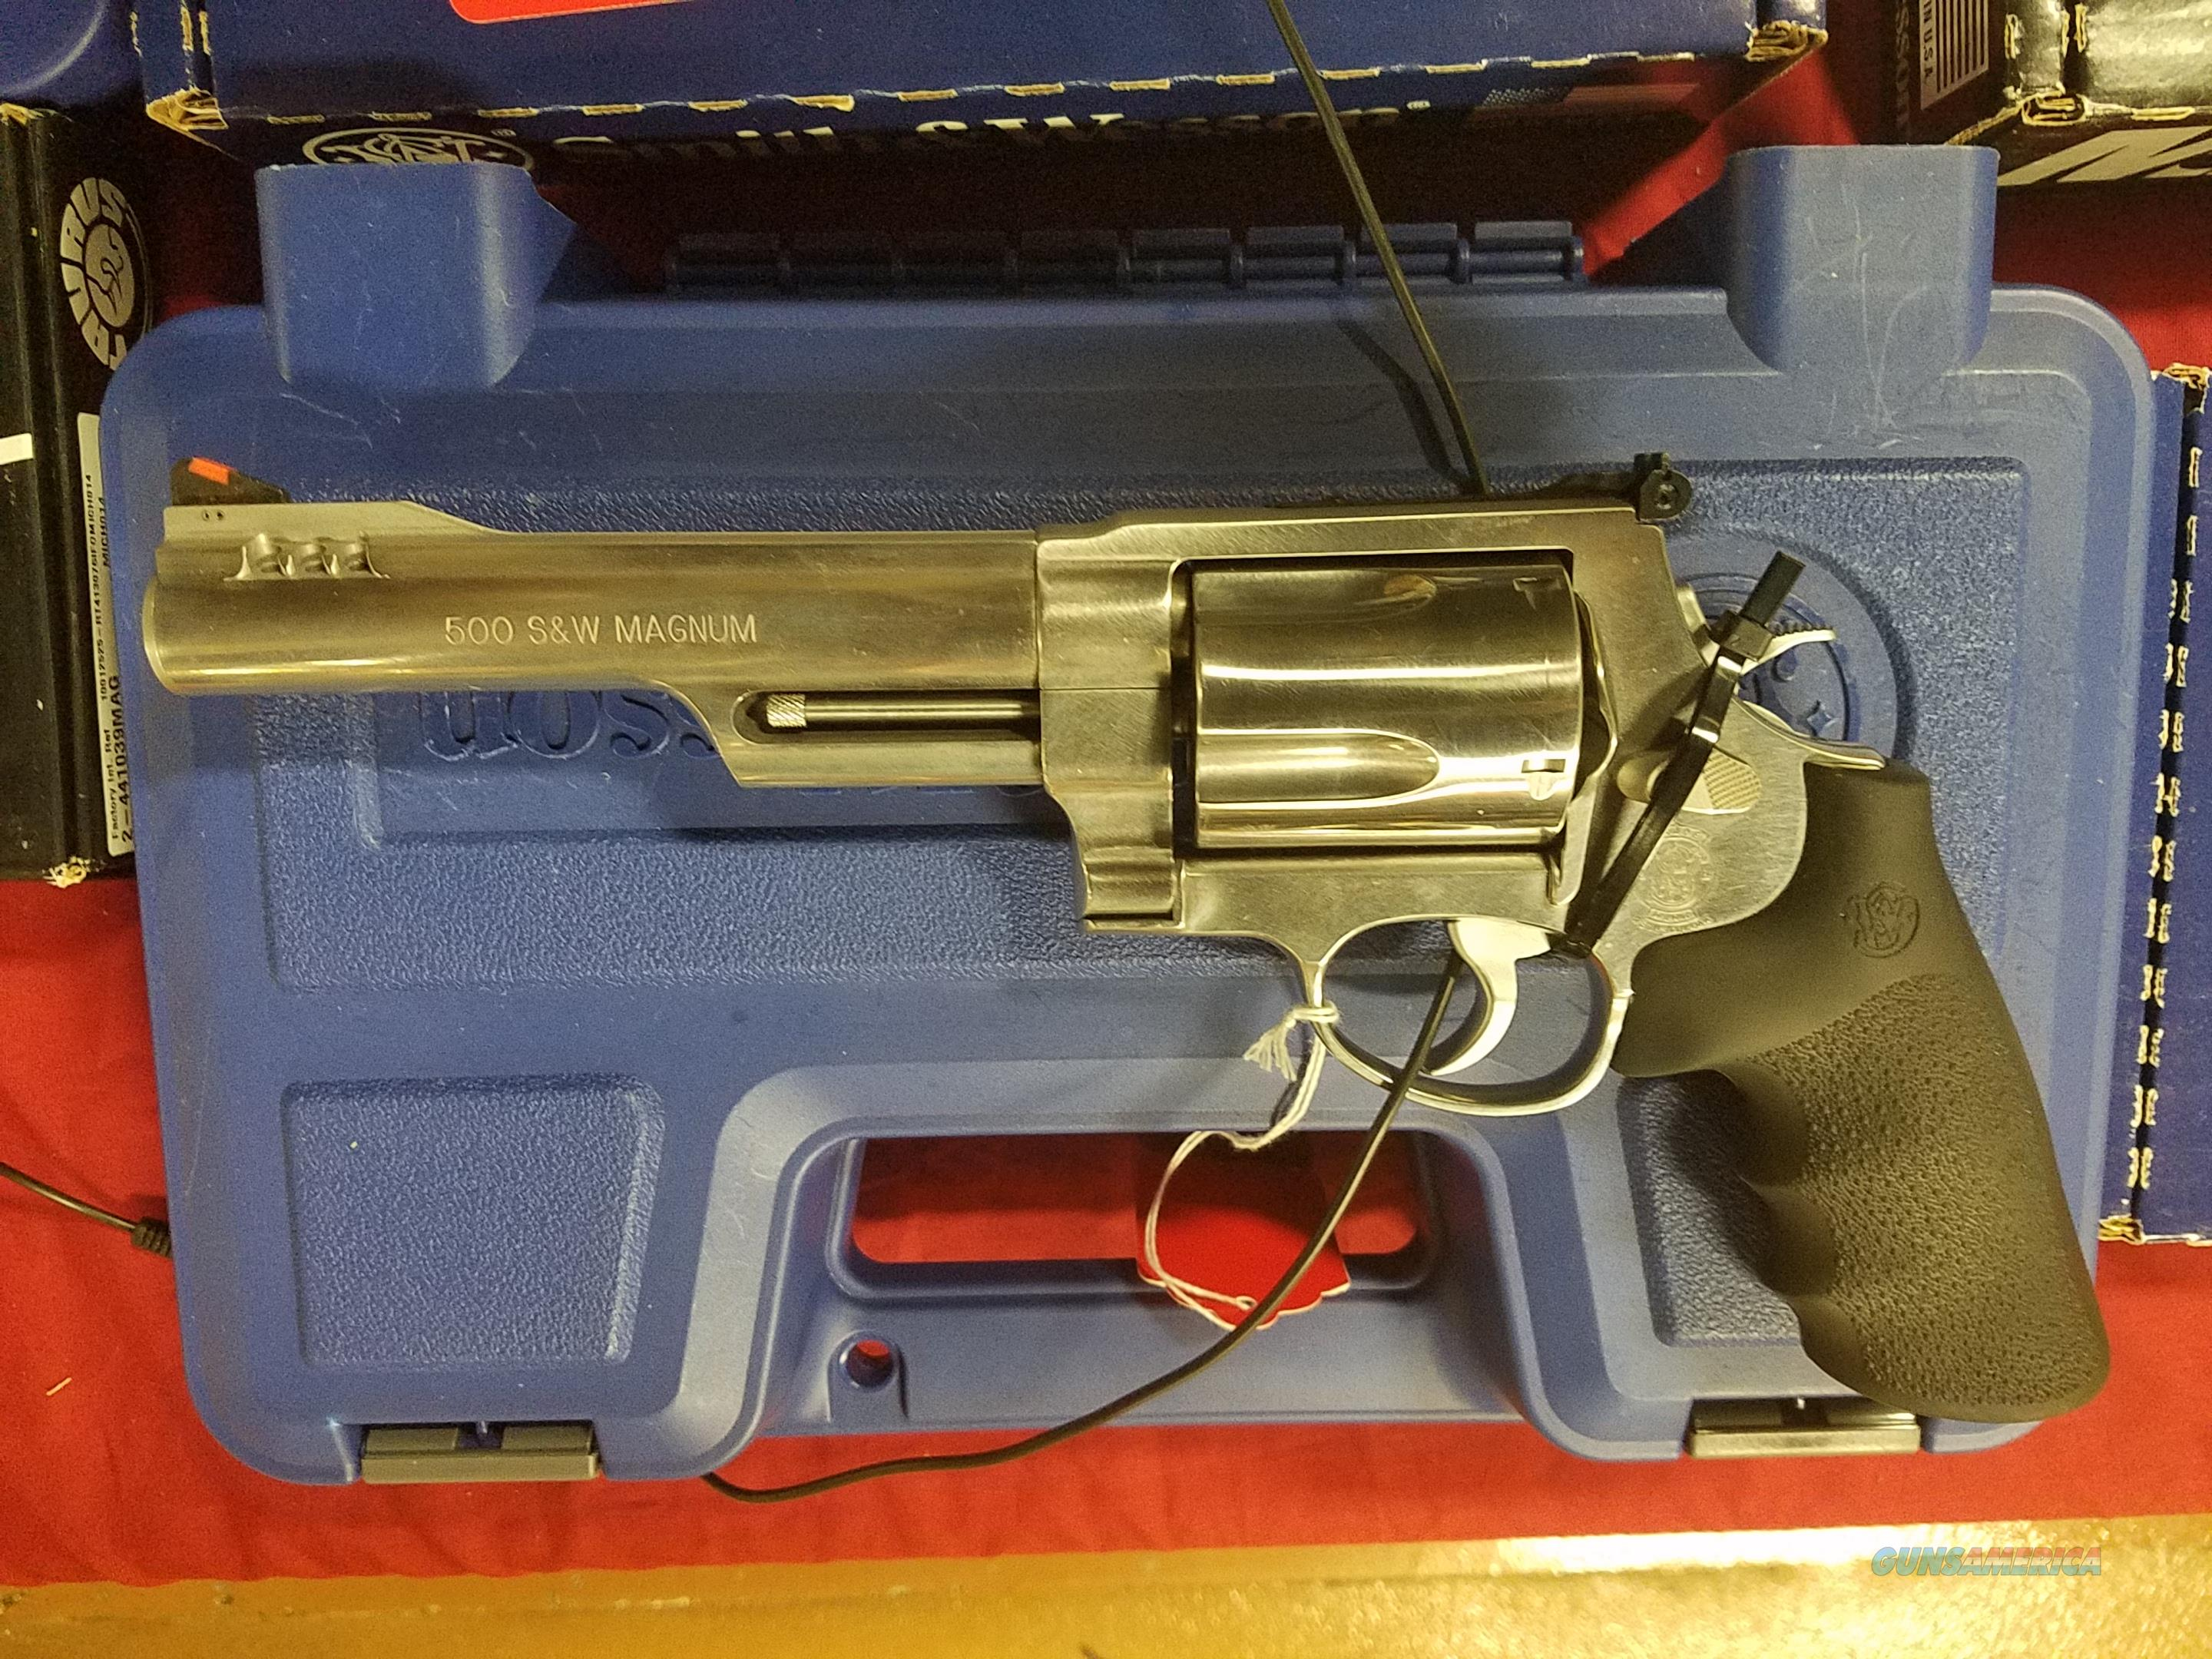 SMITH AND WESSON 500 500 S&W MAGNUM  Guns > Pistols > Smith & Wesson Revolvers > Full Frame Revolver